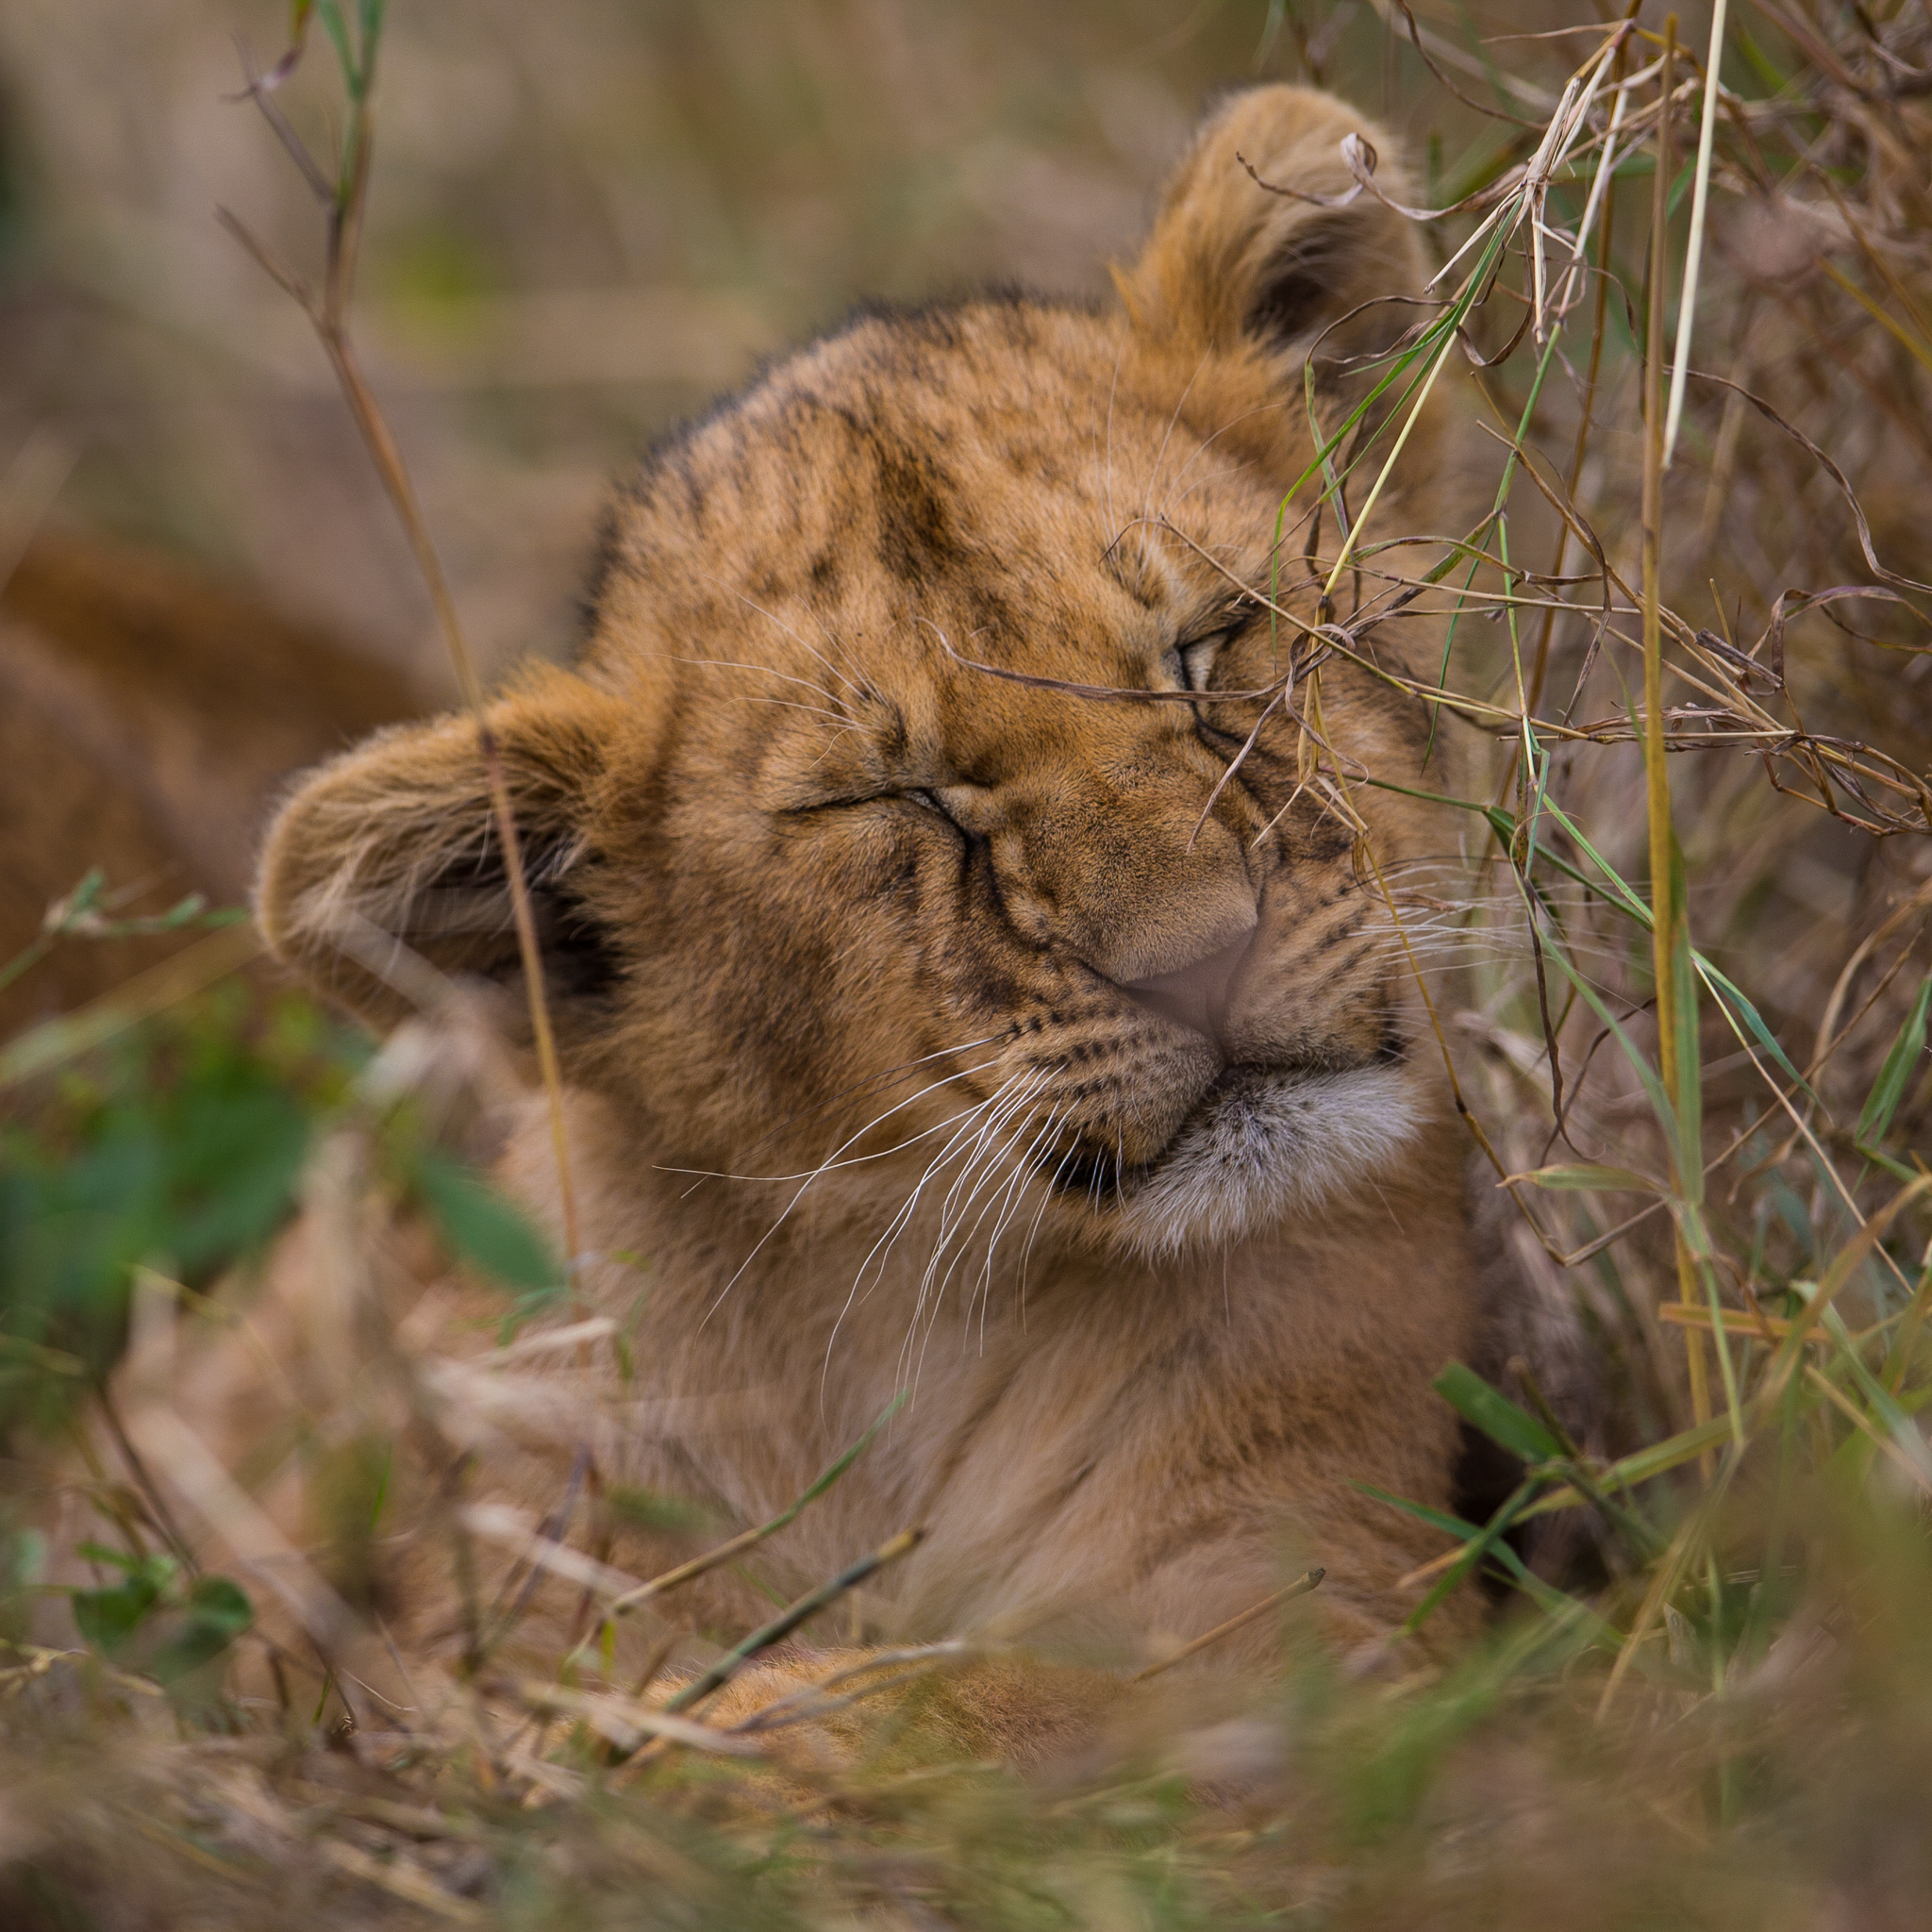 One of the Masai Mara's next generation of lions